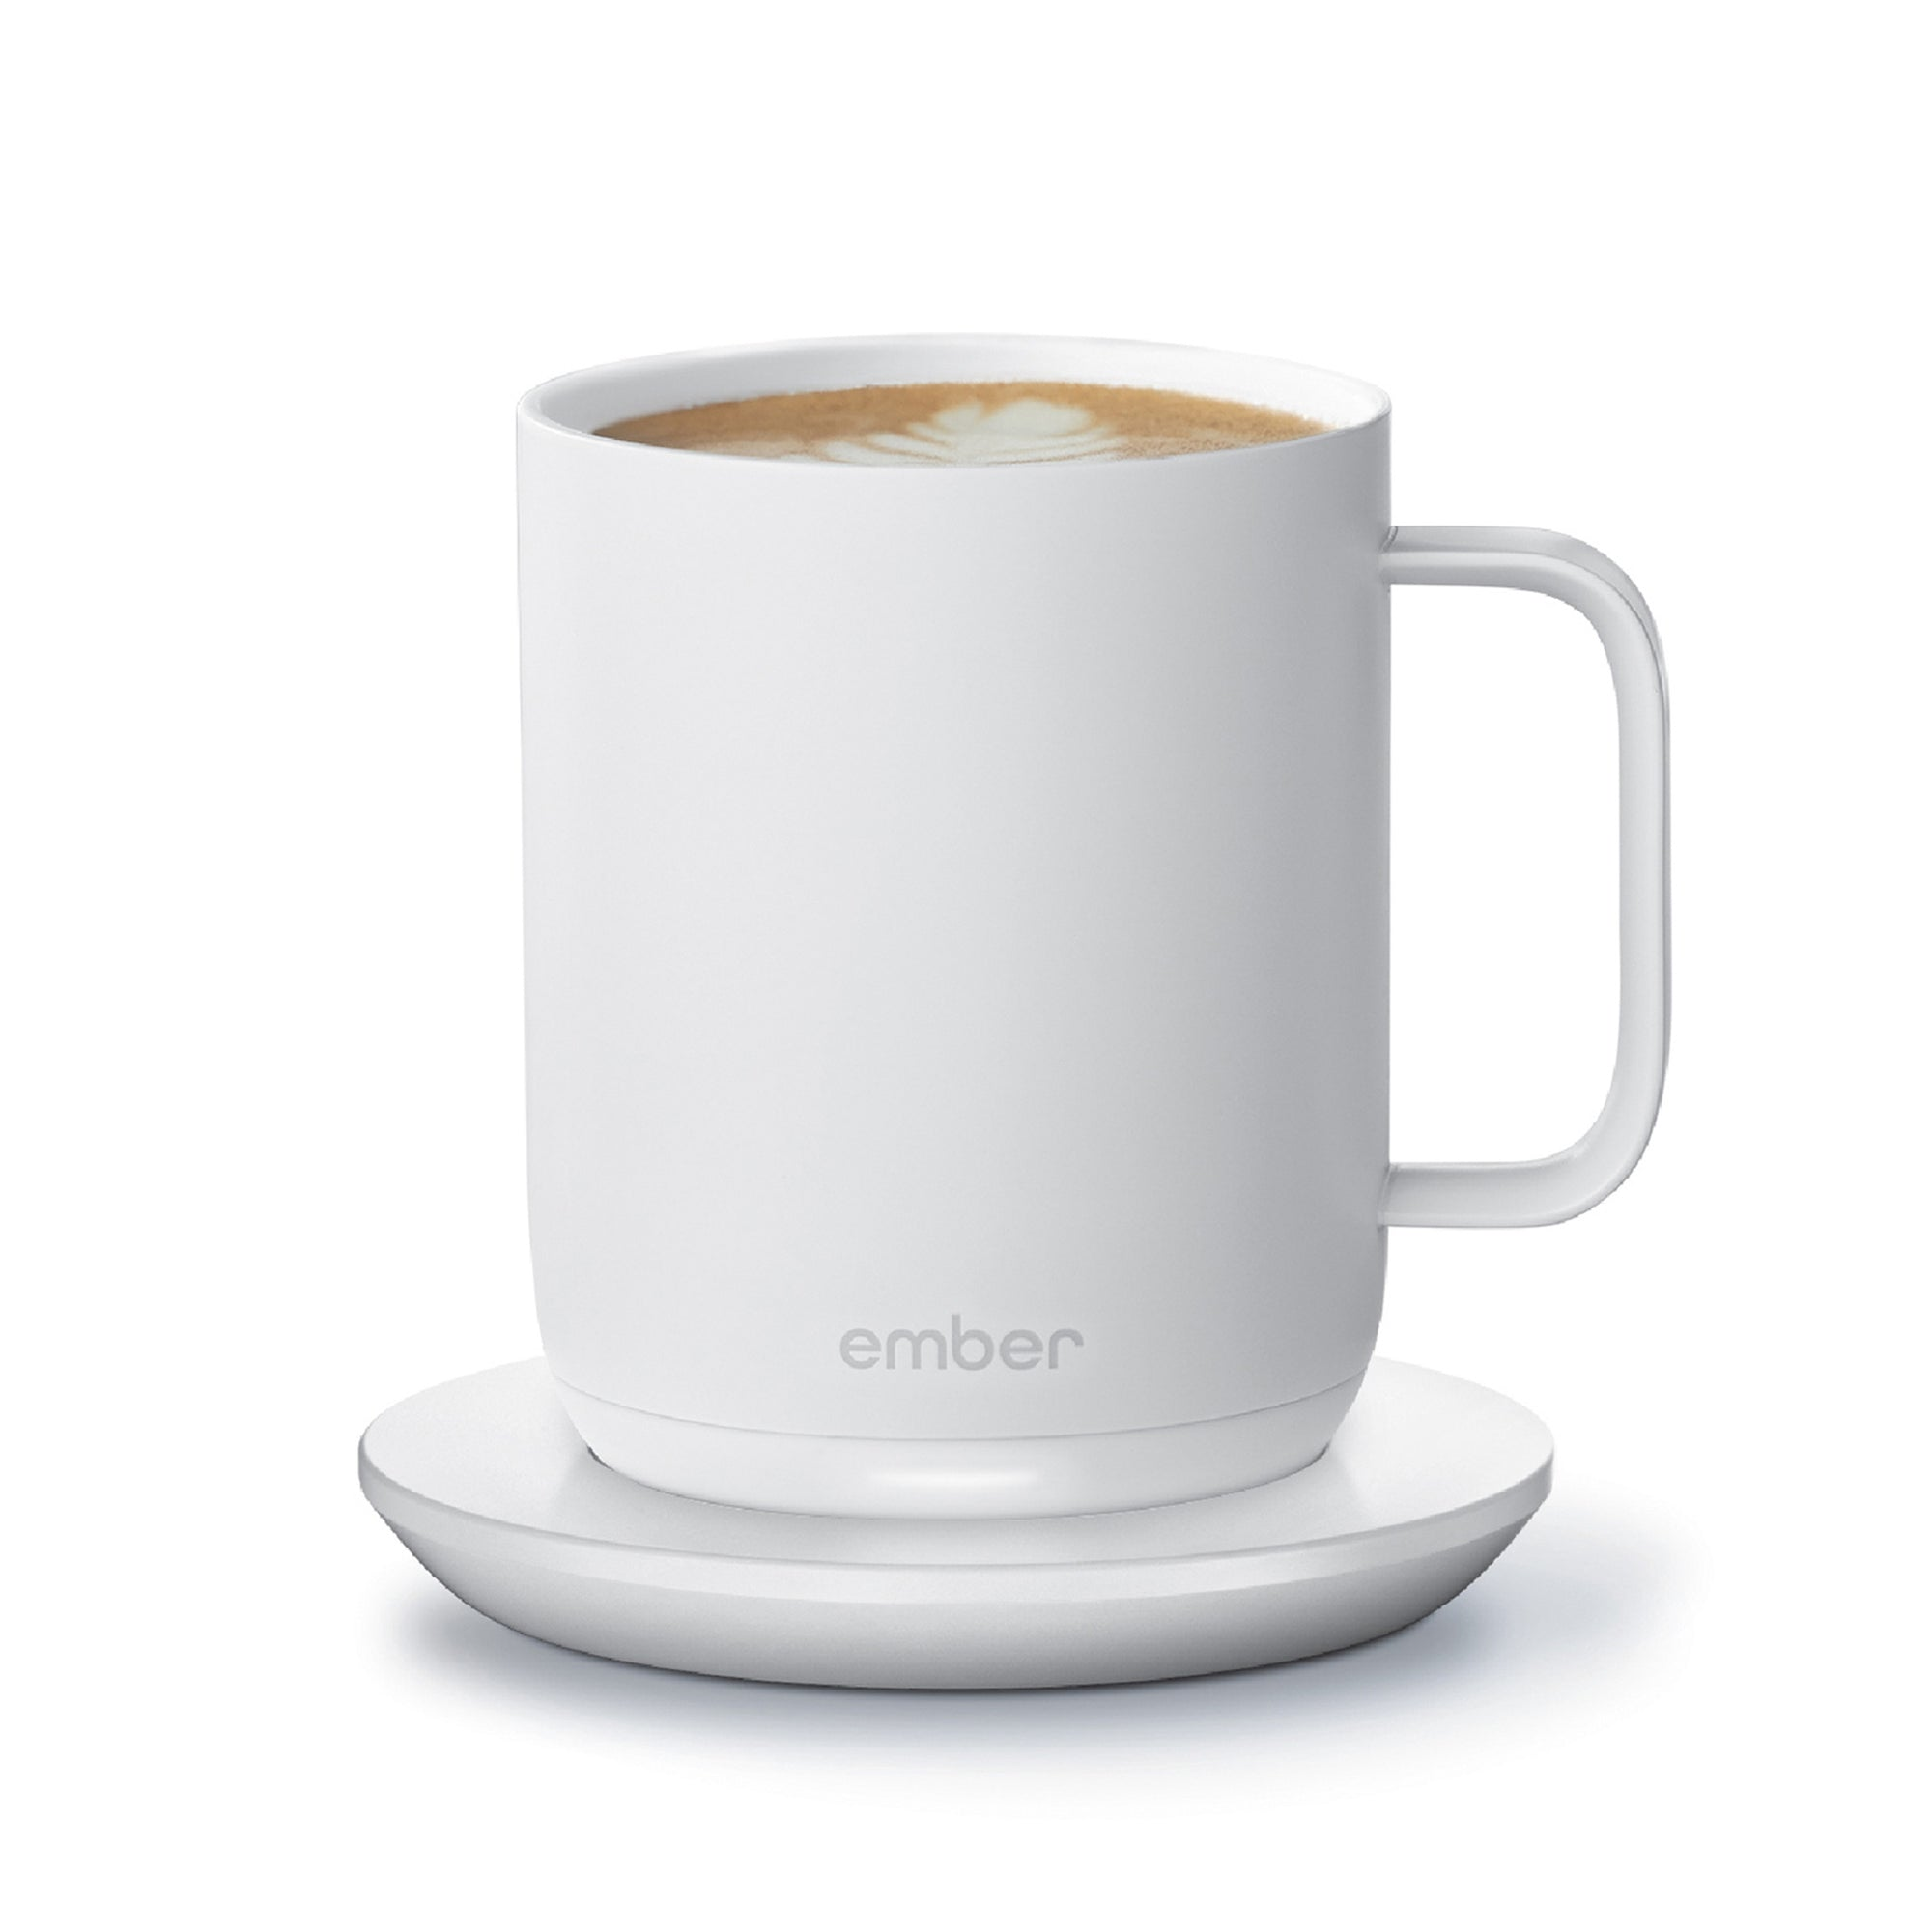 Electric Coffee Mug White V2, 295ml - Ember - Espresso Gear